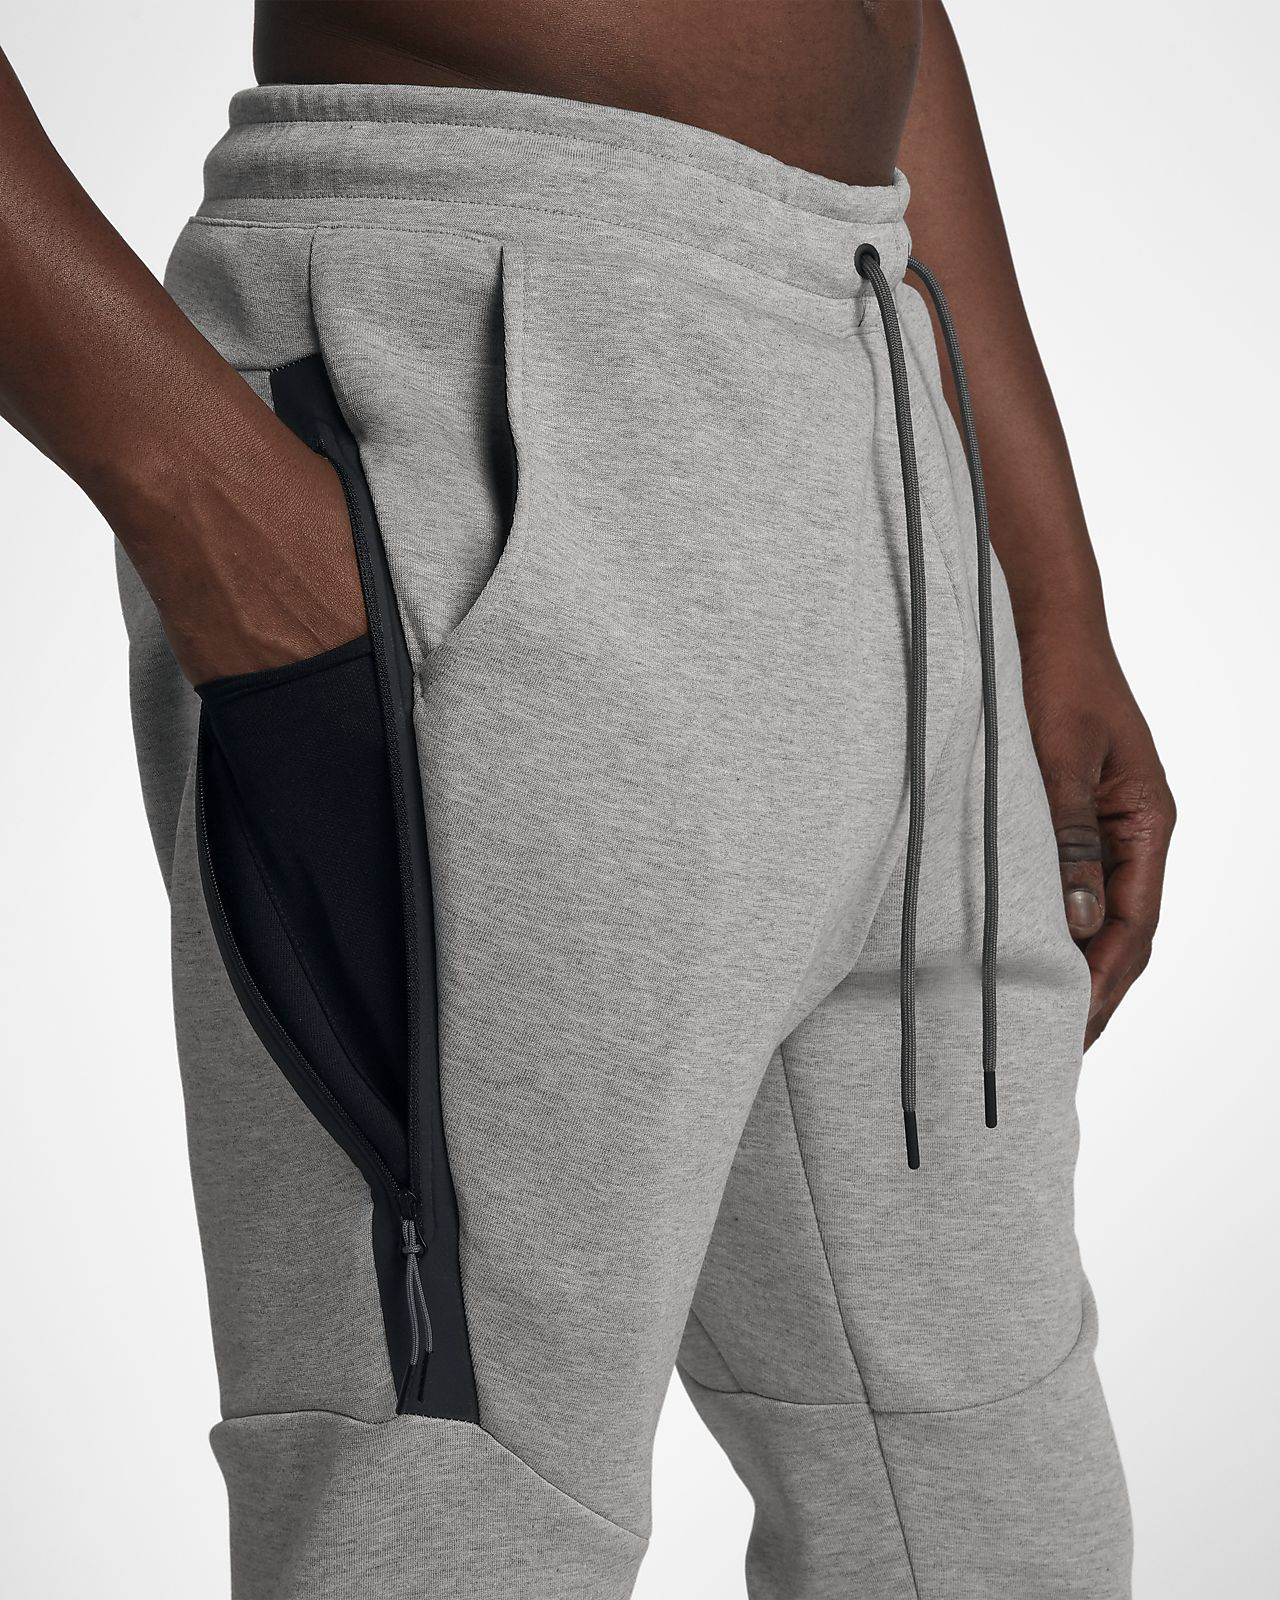 88dc5dda6209 Nike Sportswear Tech Fleece Men s Joggers. Nike.com